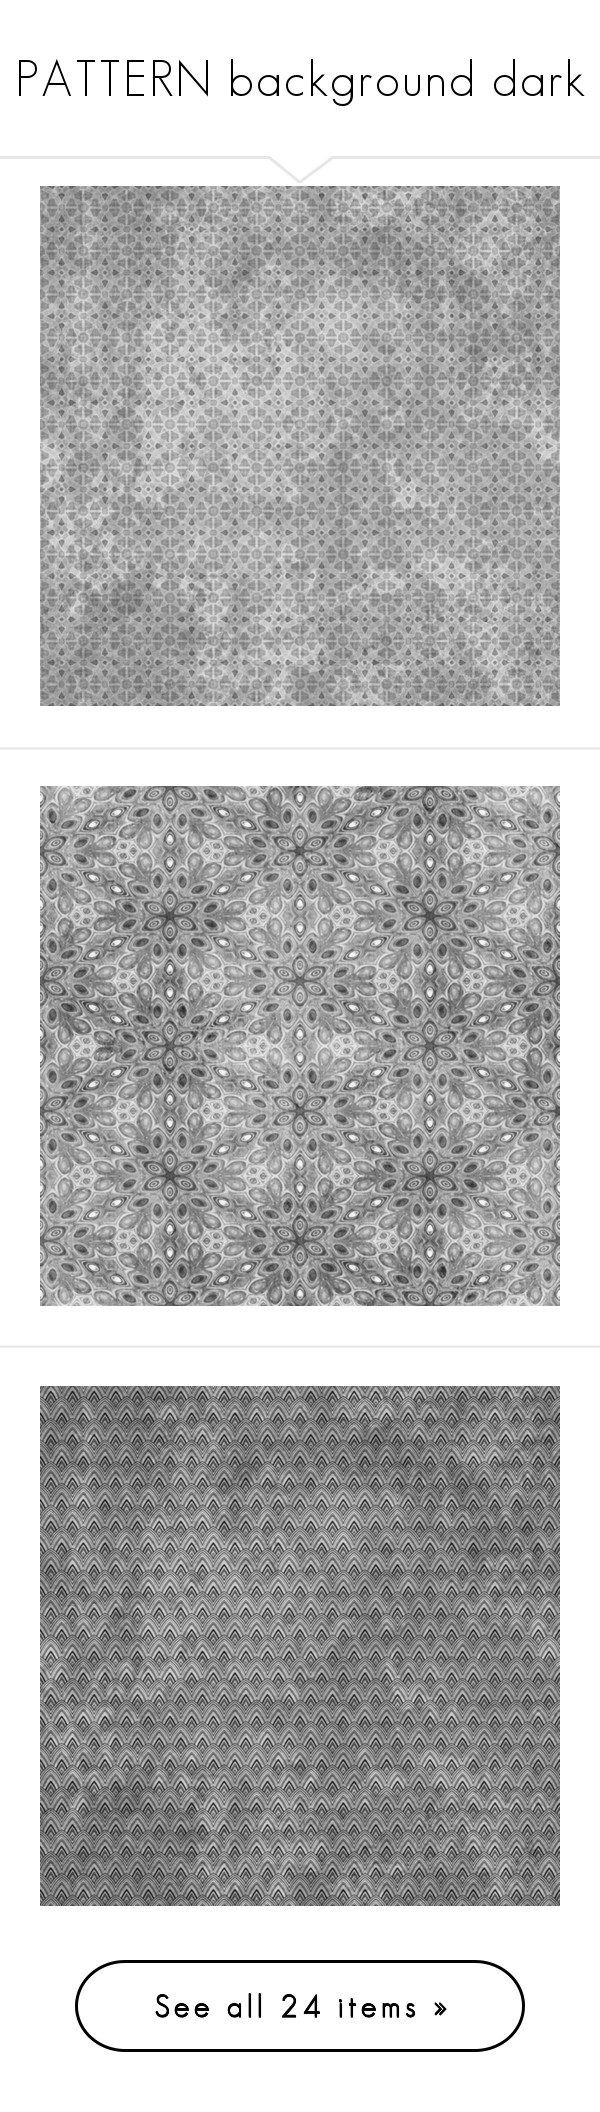 """""""PATTERN background dark"""" by ohblack on Polyvore featuring backgrounds, effects, overlay, patterns, textures, patterns & overlays, borders, picture frame, wallpaper e filler"""